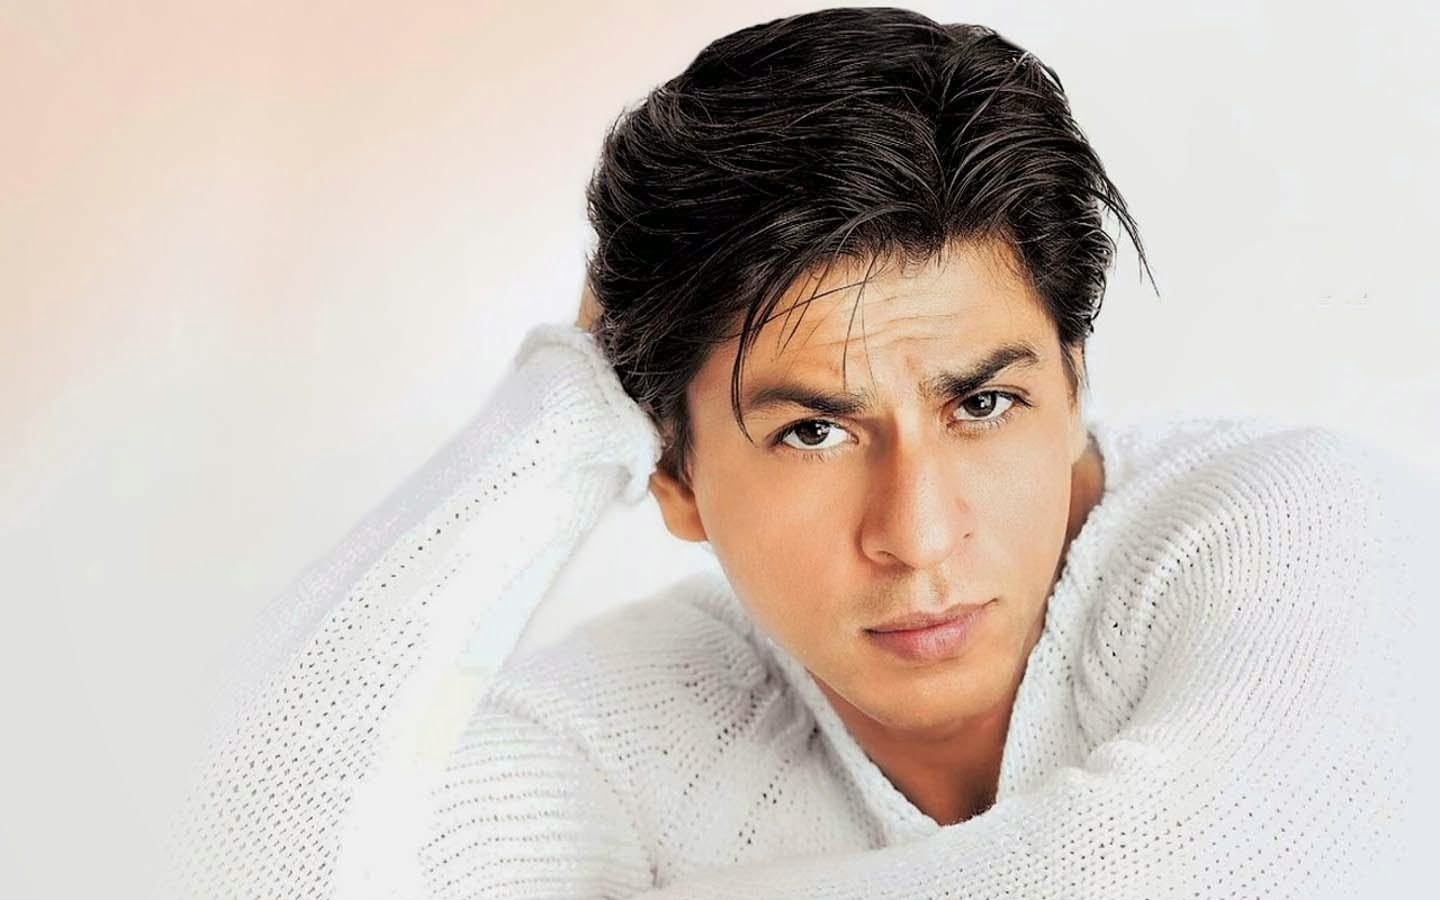 HD Wallpapers: Shah Rukh Khan HD Wallpaper